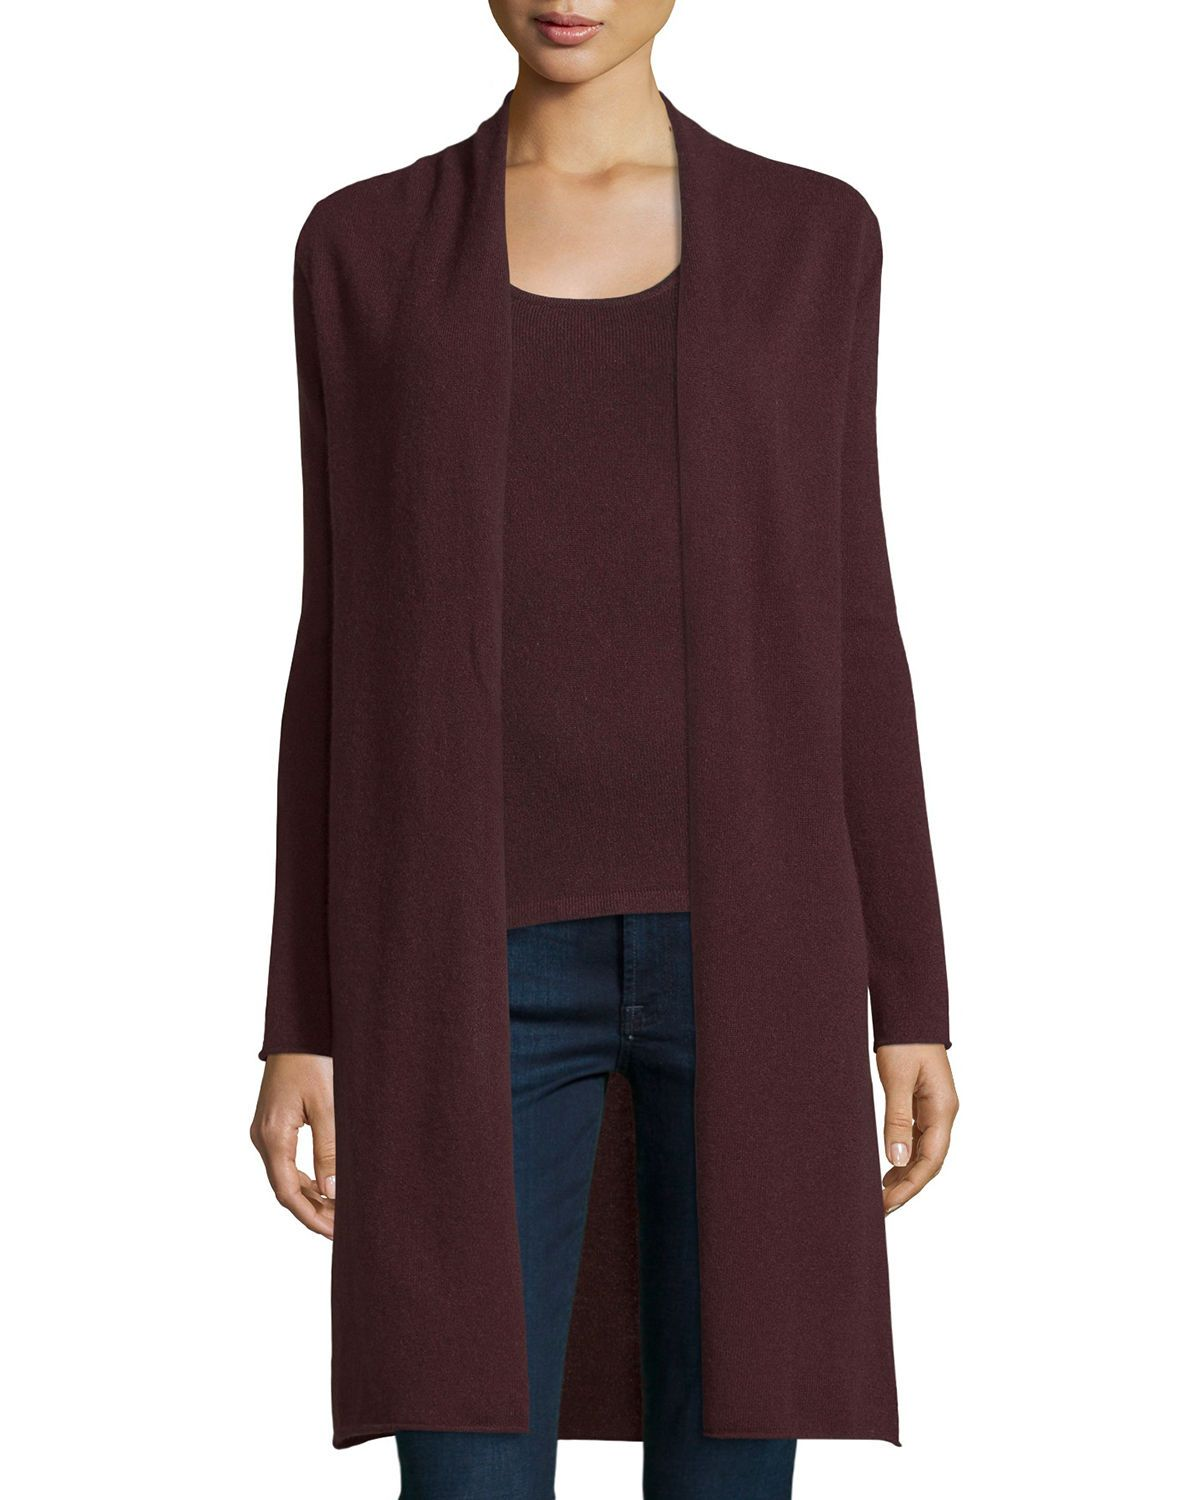 Long Cashmere Duster Cardigan | Style | Pinterest | Dusters ...